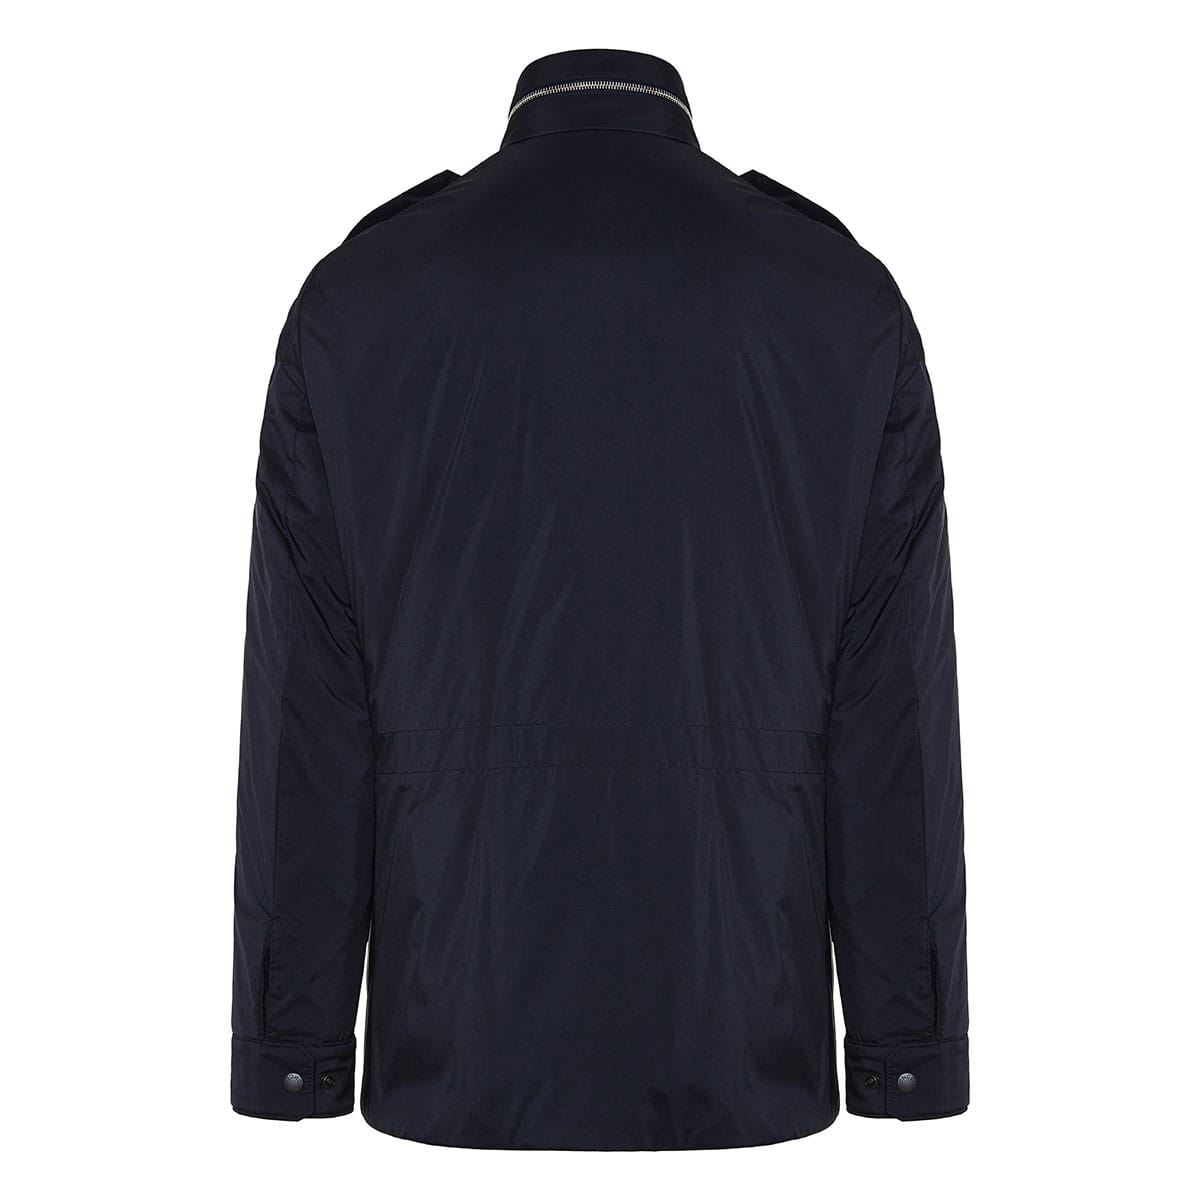 Padded nylon jacket